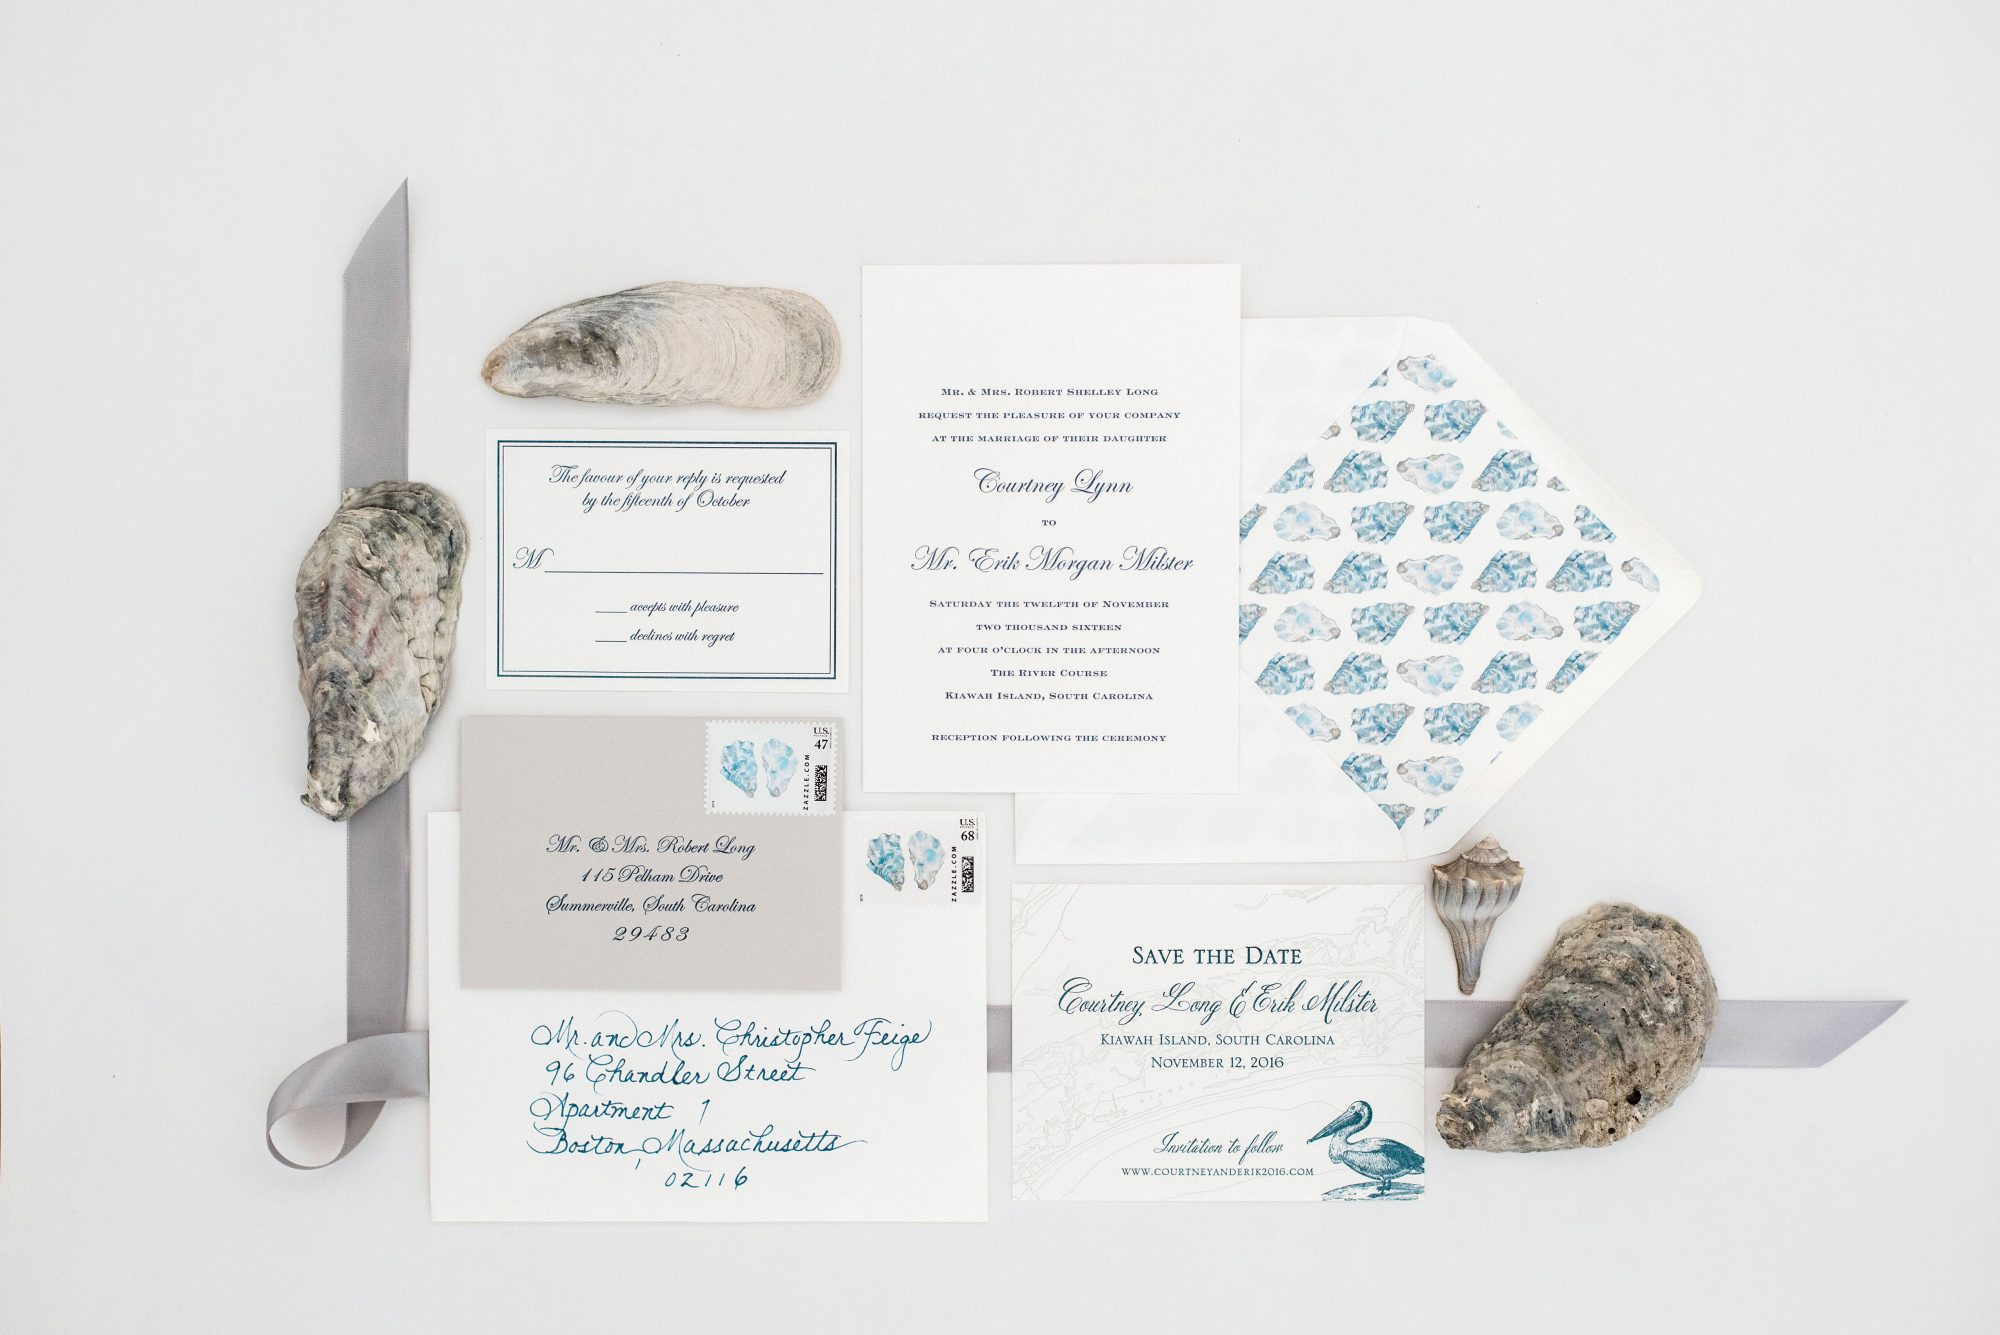 nautical invitation set gray and blue colors with oyster shells